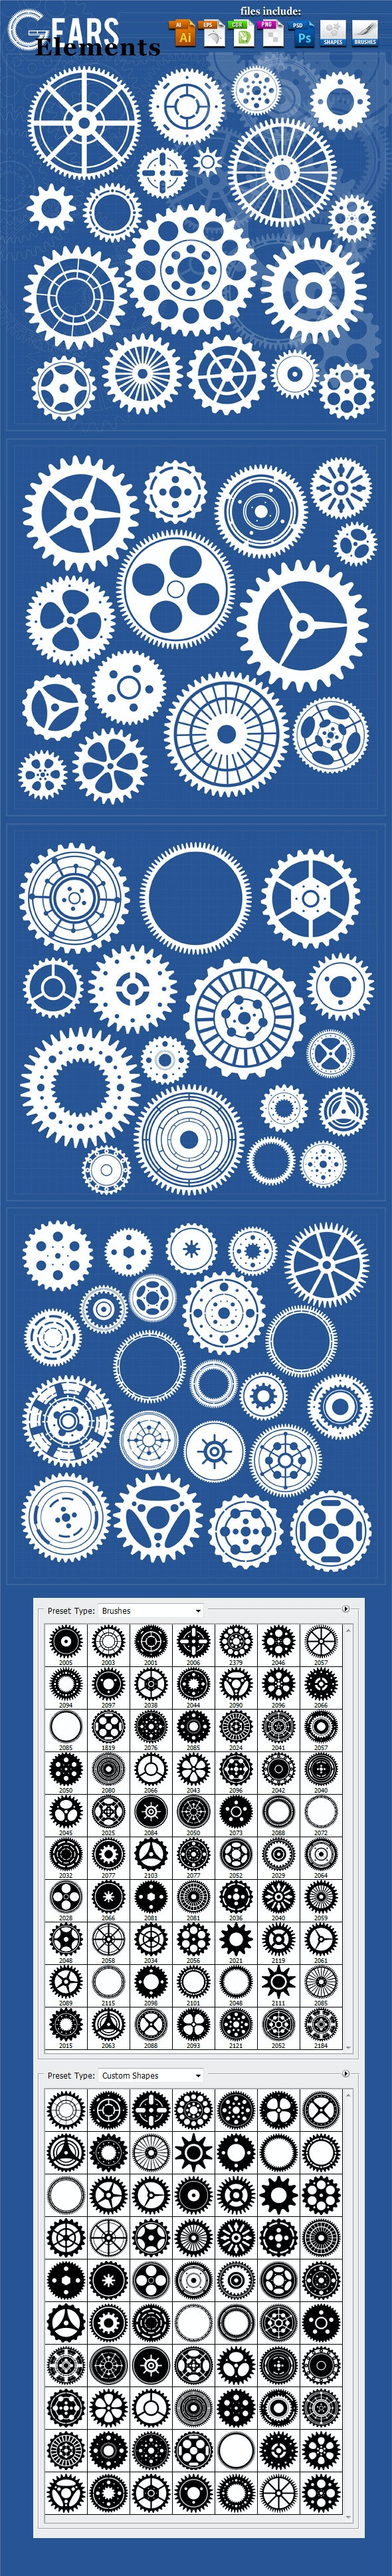 70 Gears Elements  - Objects Shapes